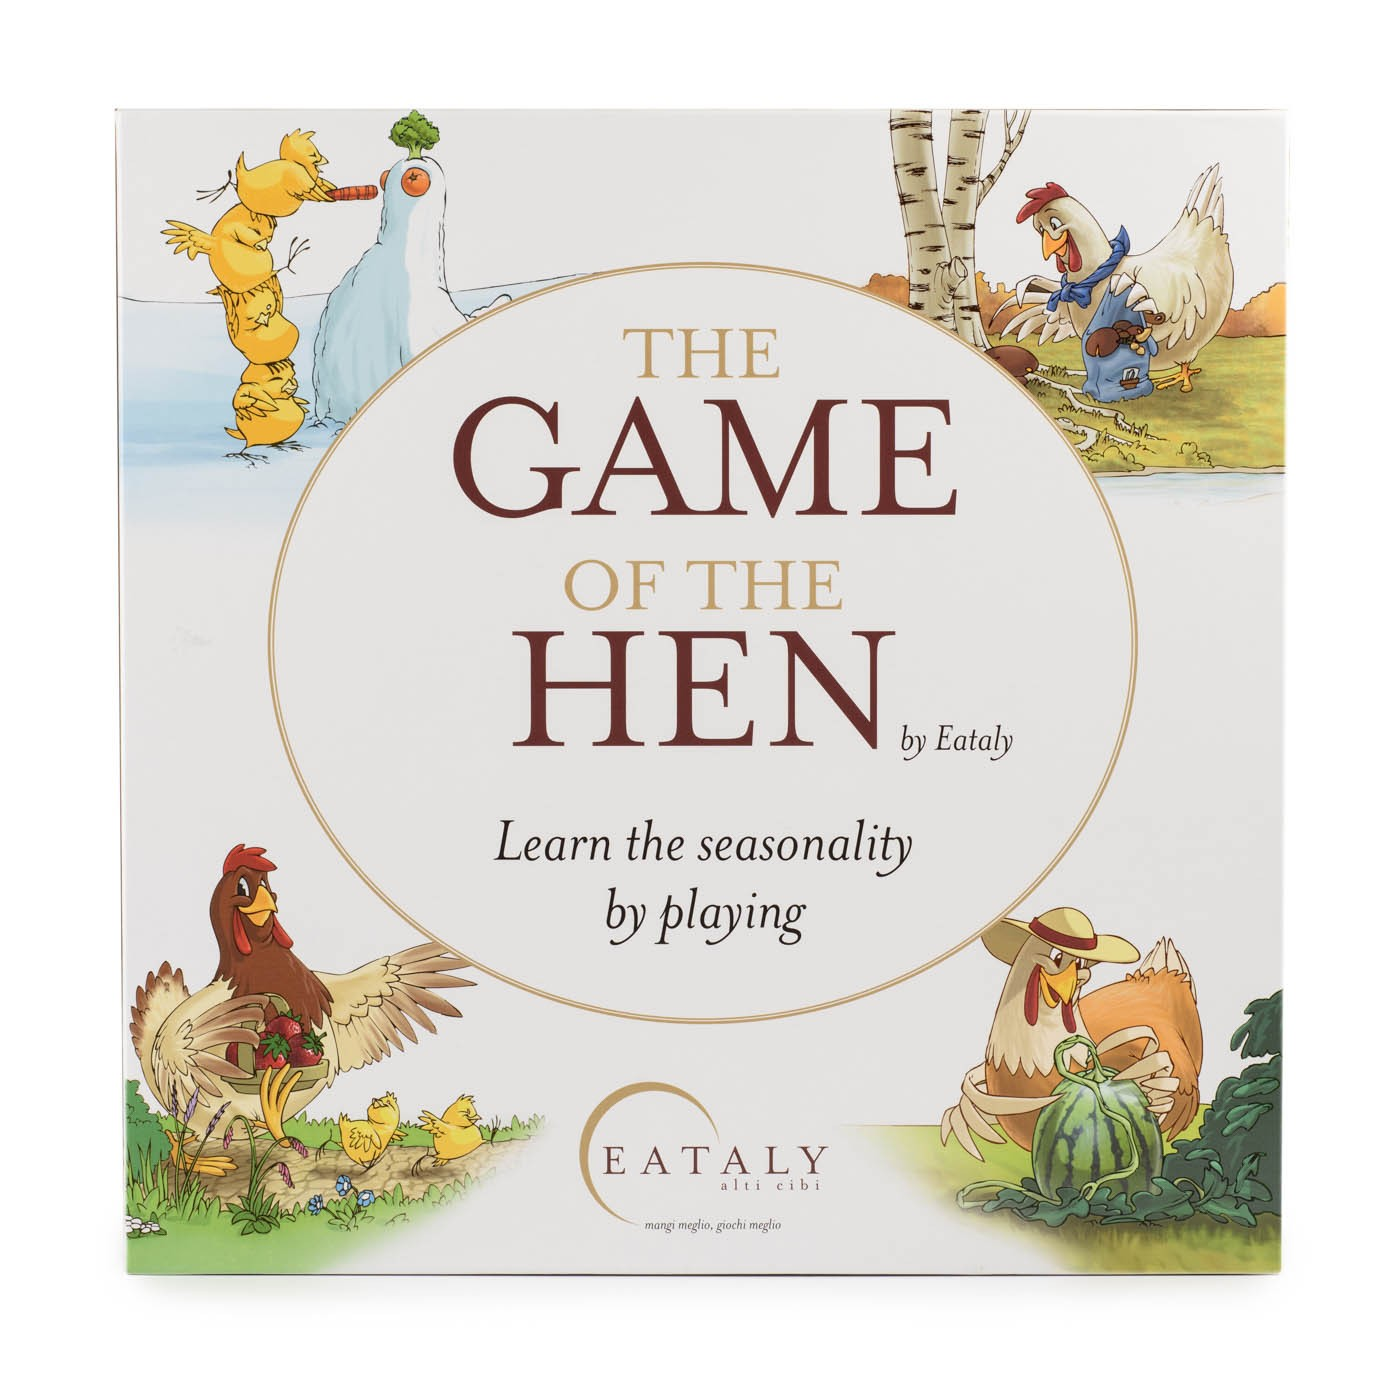 The Game of the Hen